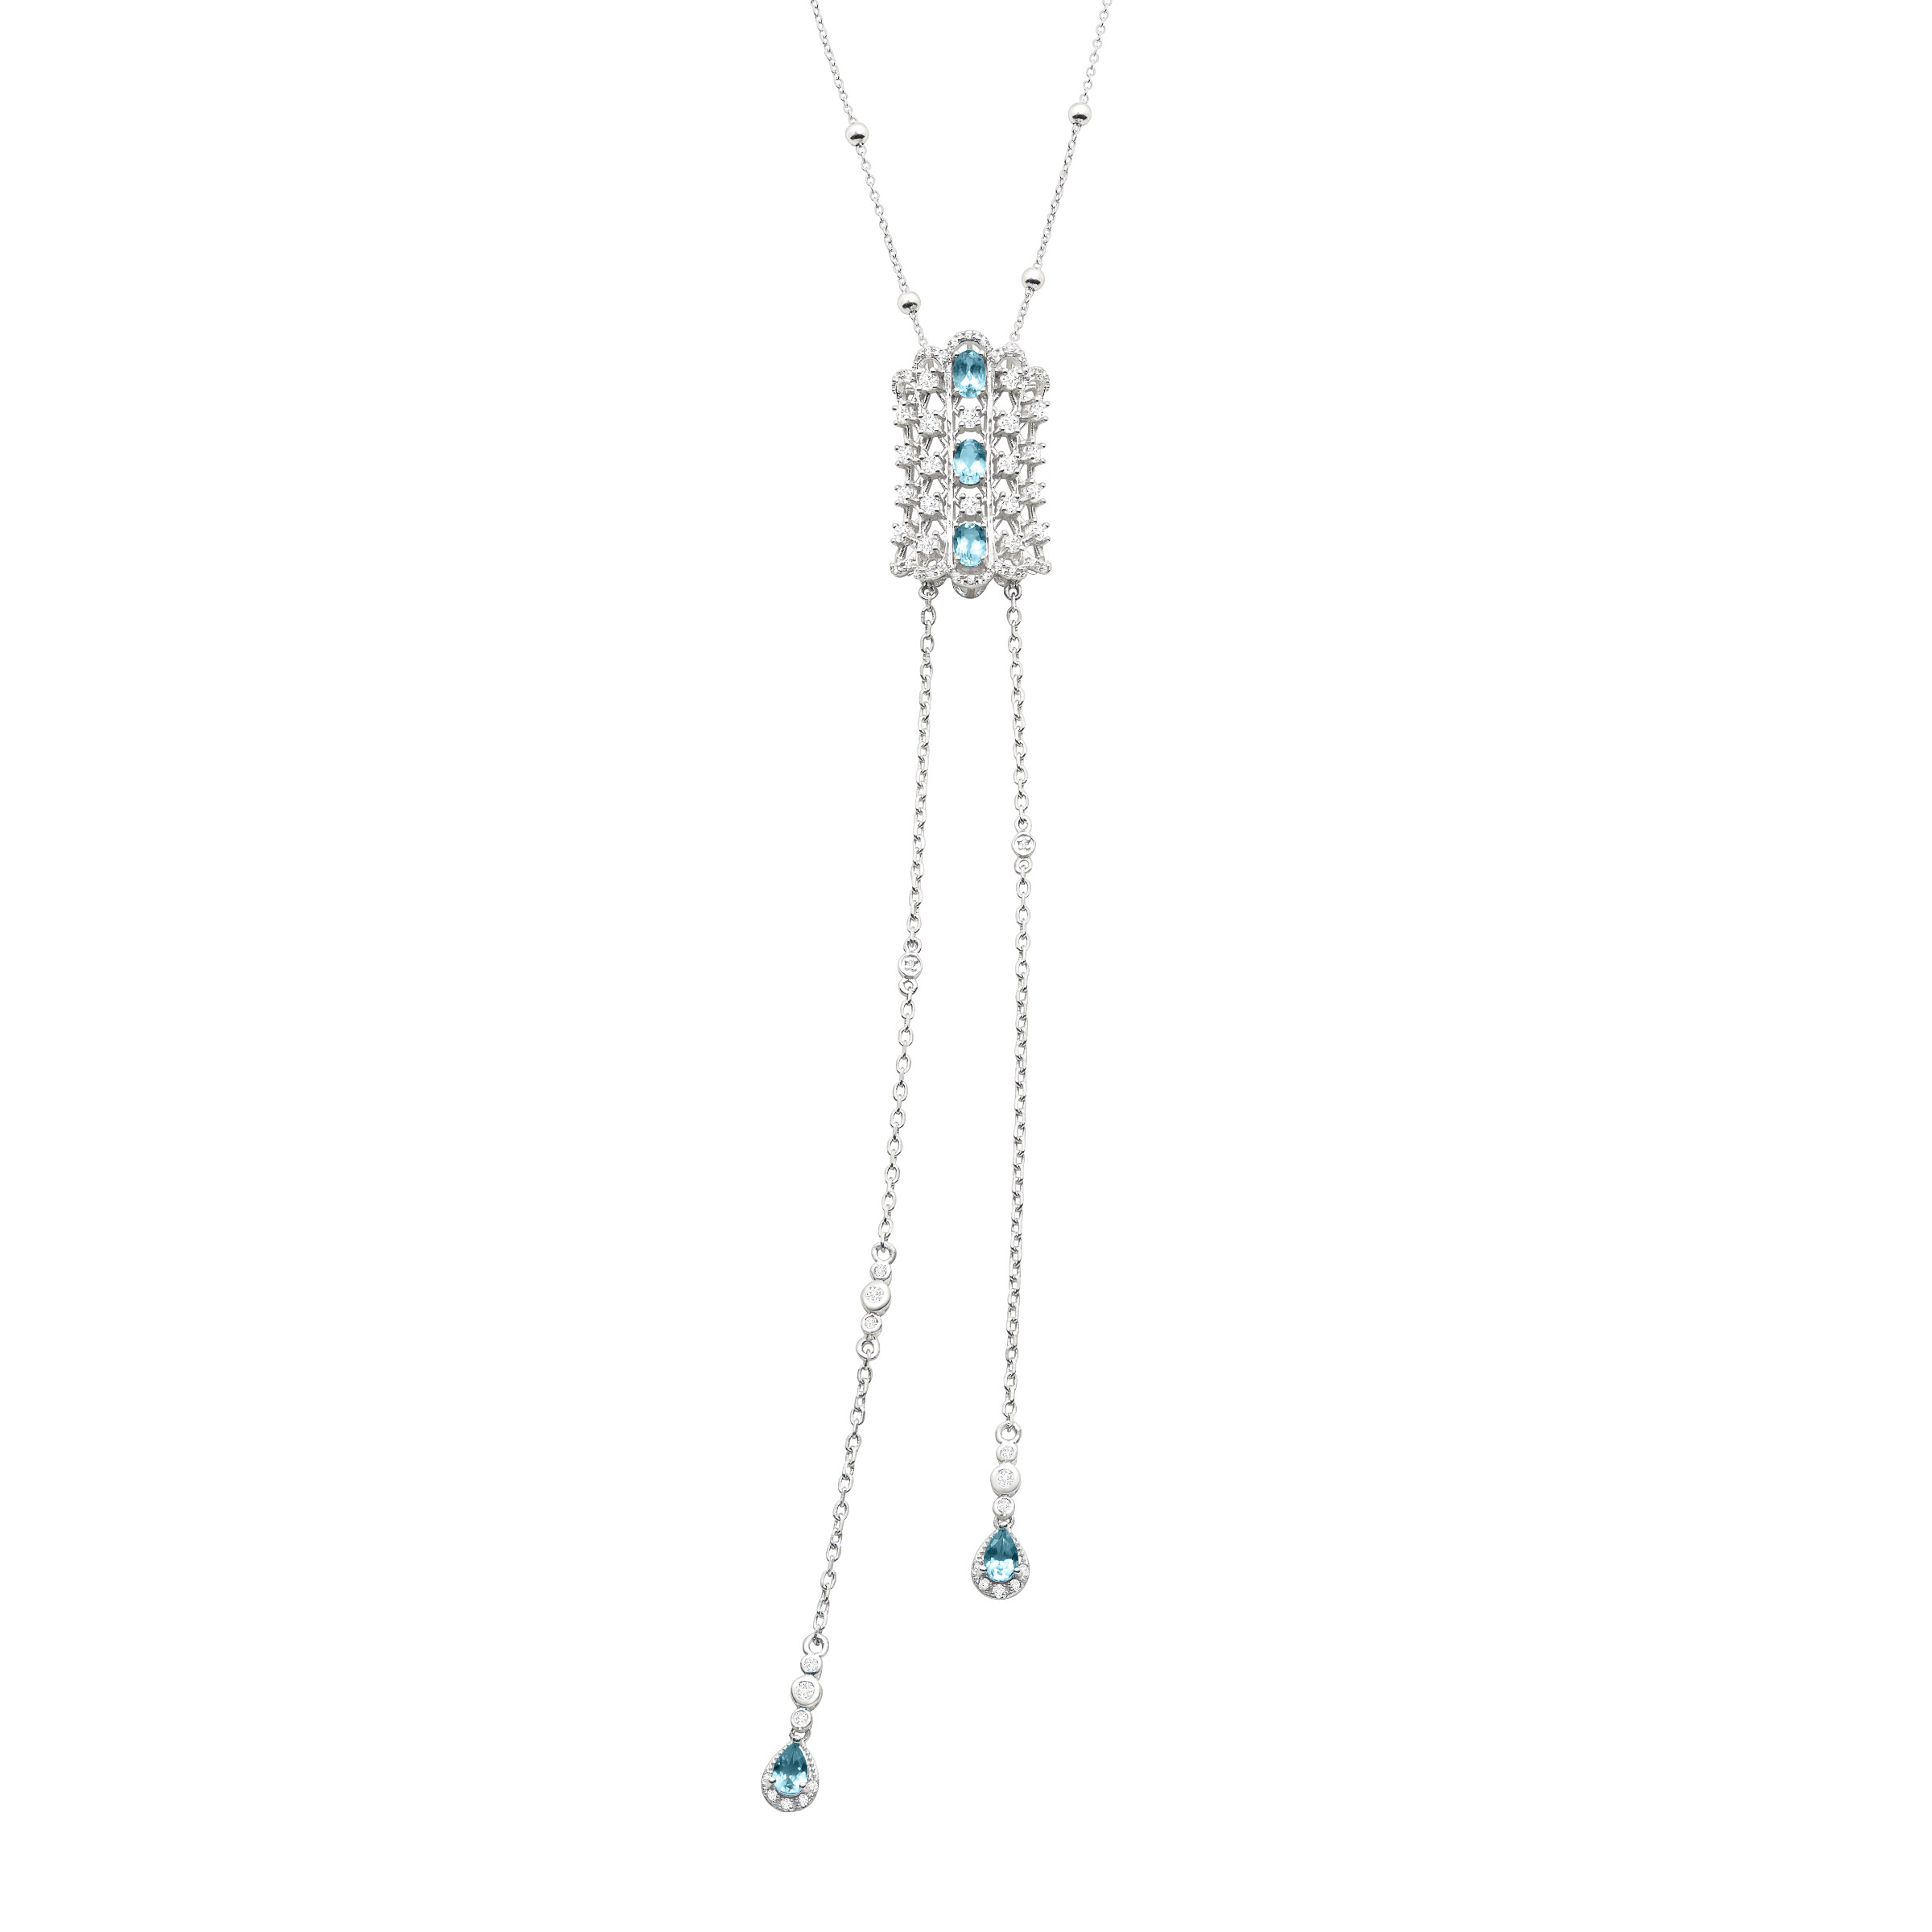 Cristina Sabatini Natural Swiss Blue Topaz & White Topaz Lumiere Necklace in Sterling Silver by Richline Group